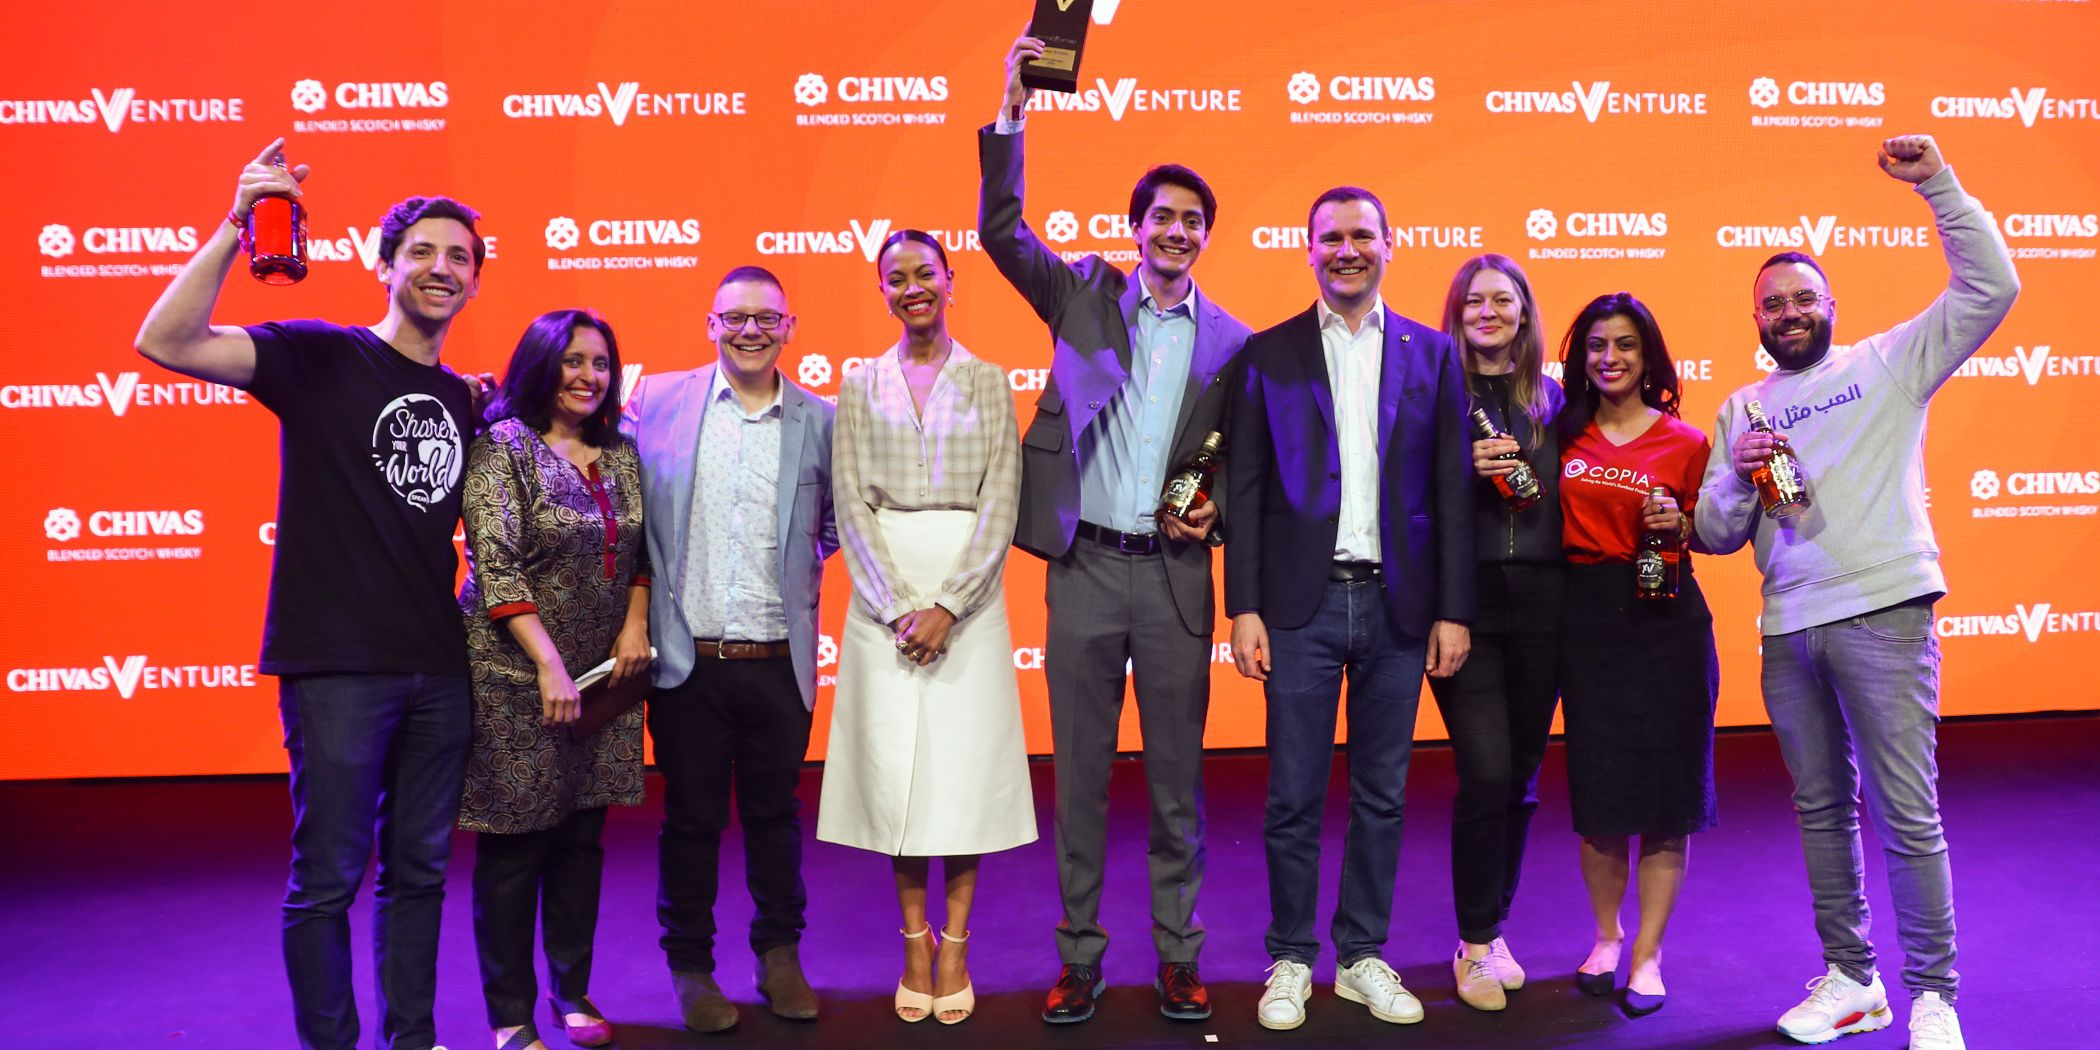 Xilinat crowned the winner of the 2019 Chivas Venture!